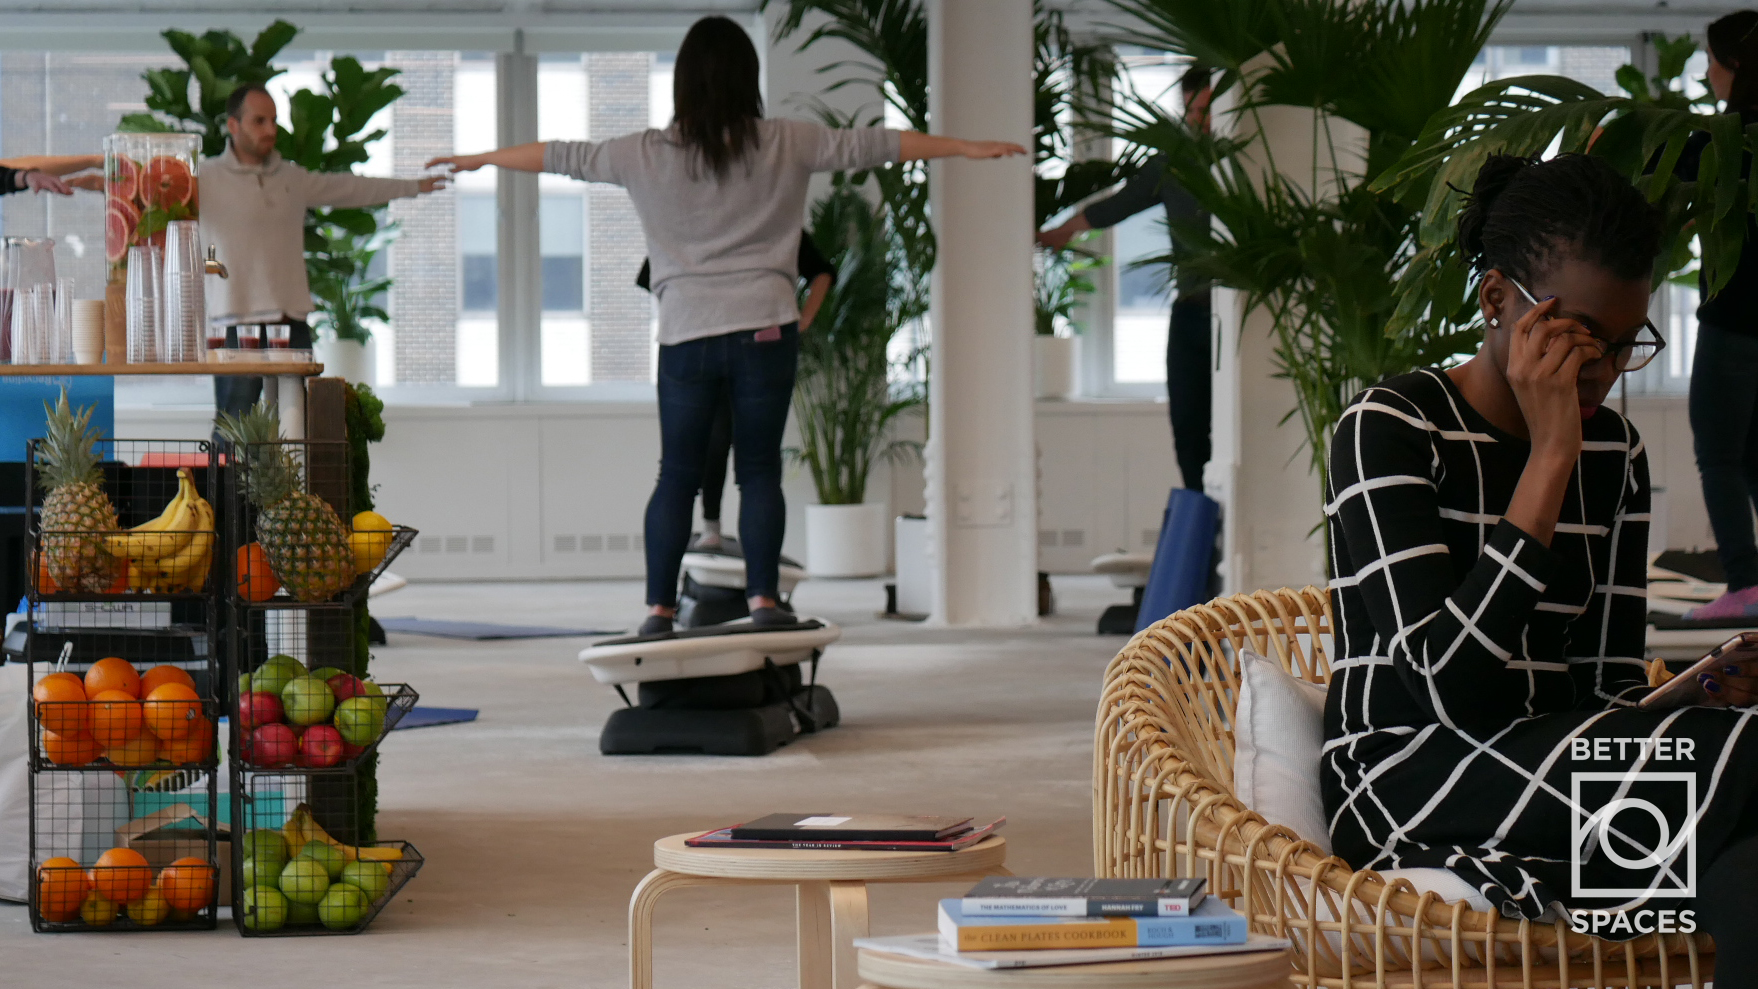 Tenants Enjoy Surfing Meditation in Vacant White Box Space   Photo Credit: Bryan Lavery, May 2018   Download for Web  |  Download for Print